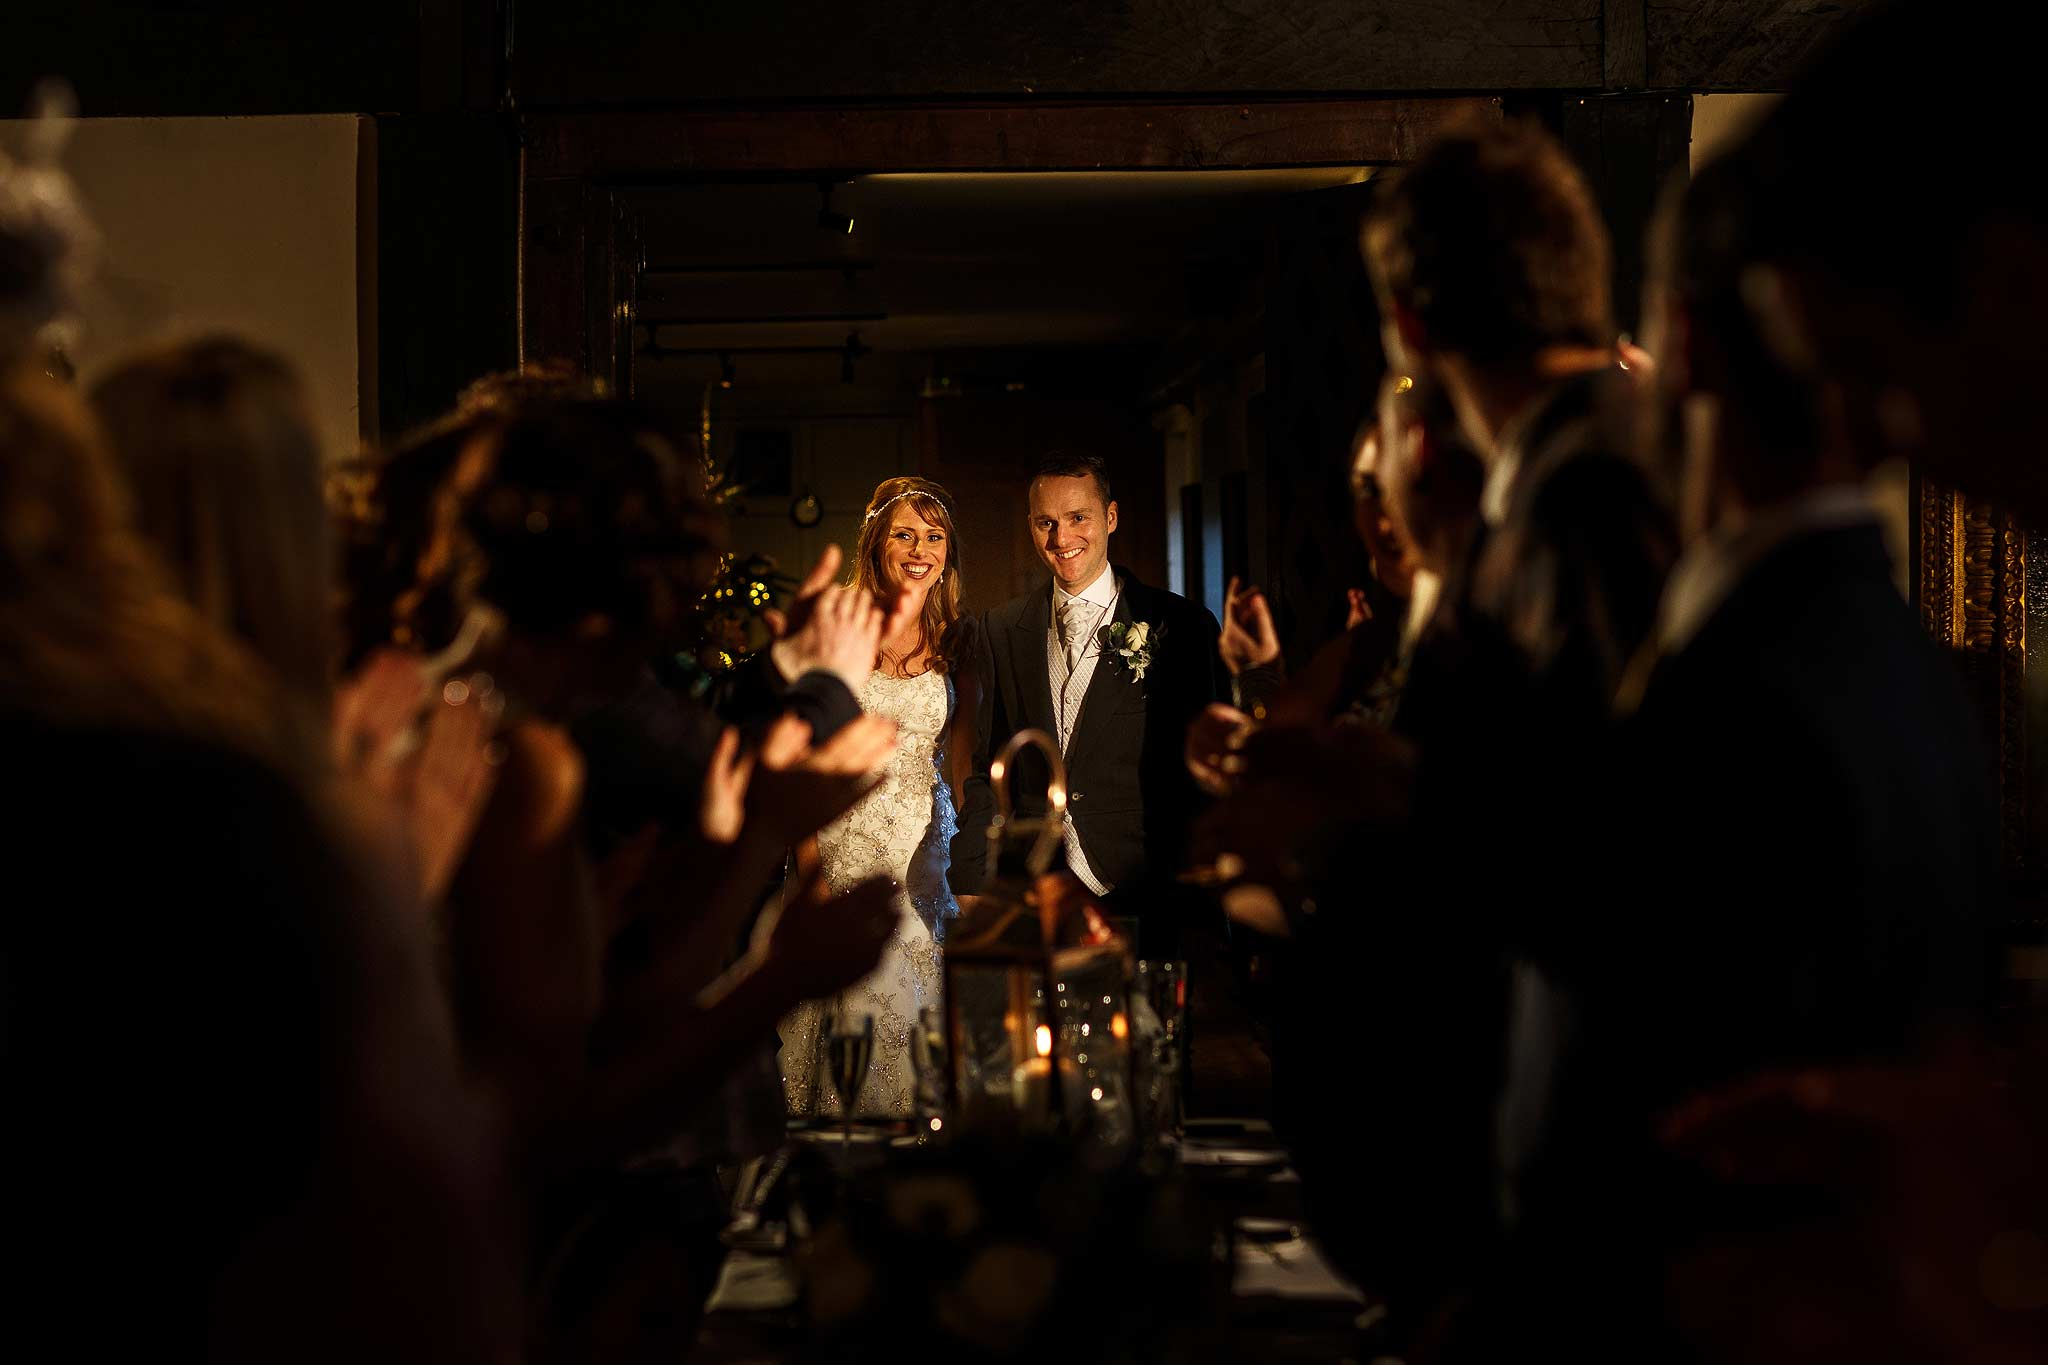 Bride and groom entering the room for their Samlesbury Hall wedding breakfast